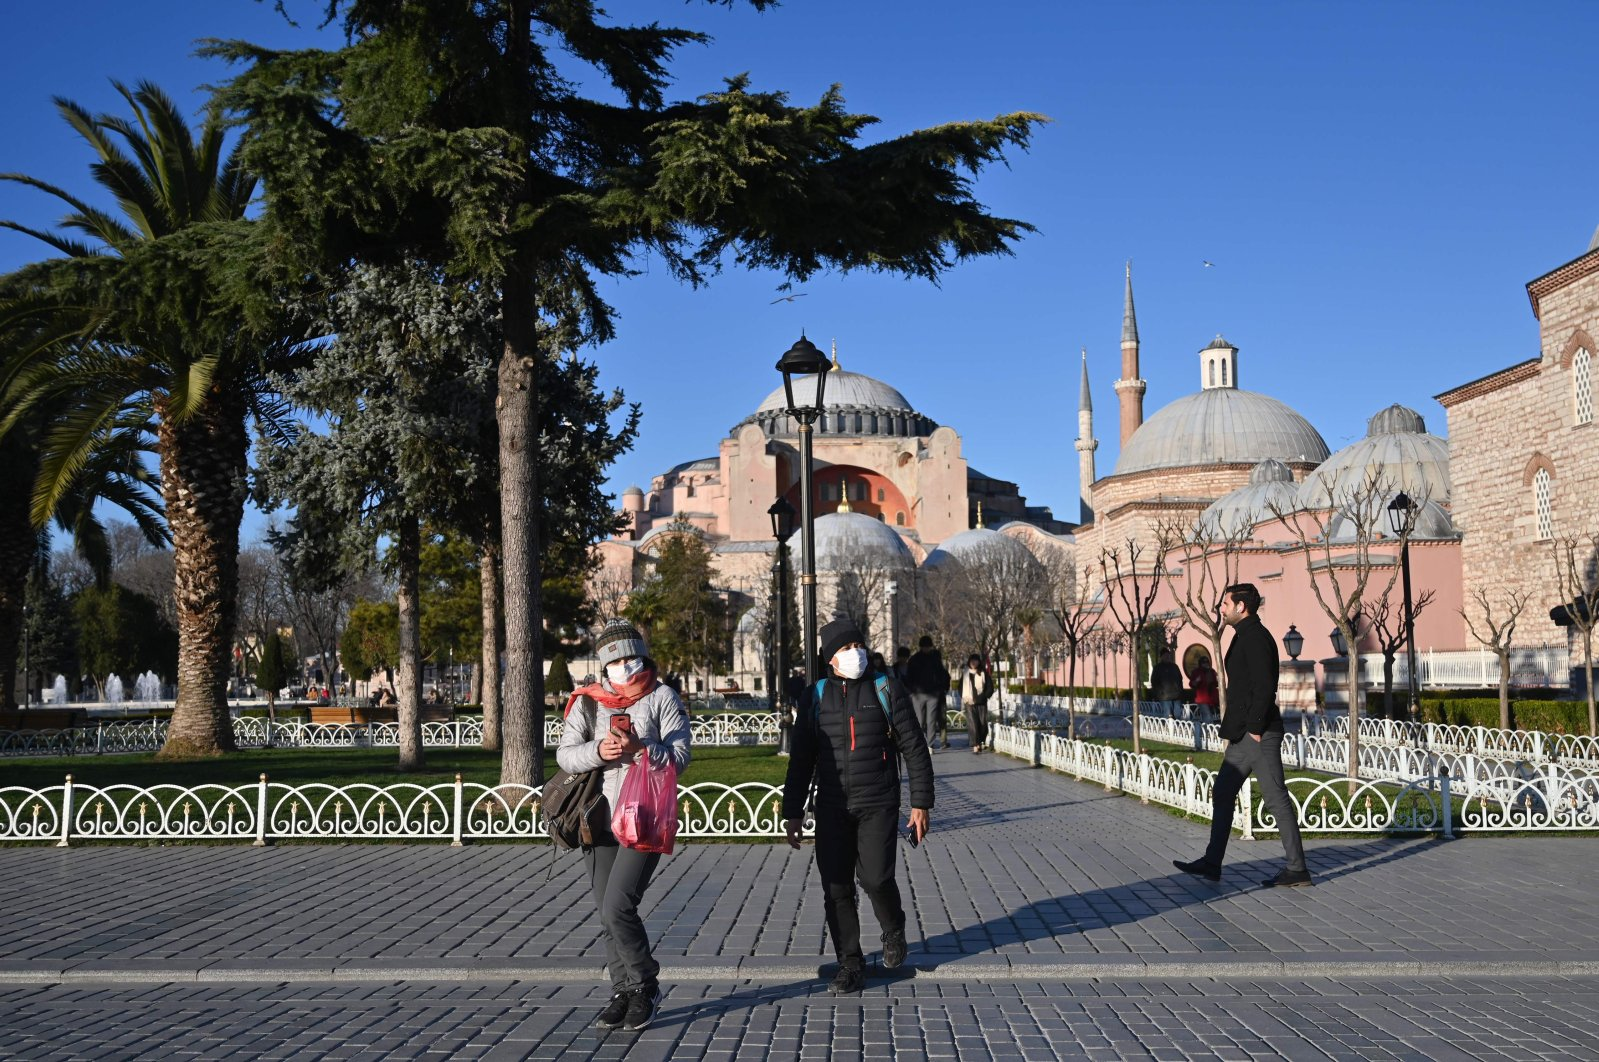 Tourists wear protective face masks as they walk near Hagia Sophia during the coronavirus outbreak, Istanbul, March 17, 2020. (AFP Photo)